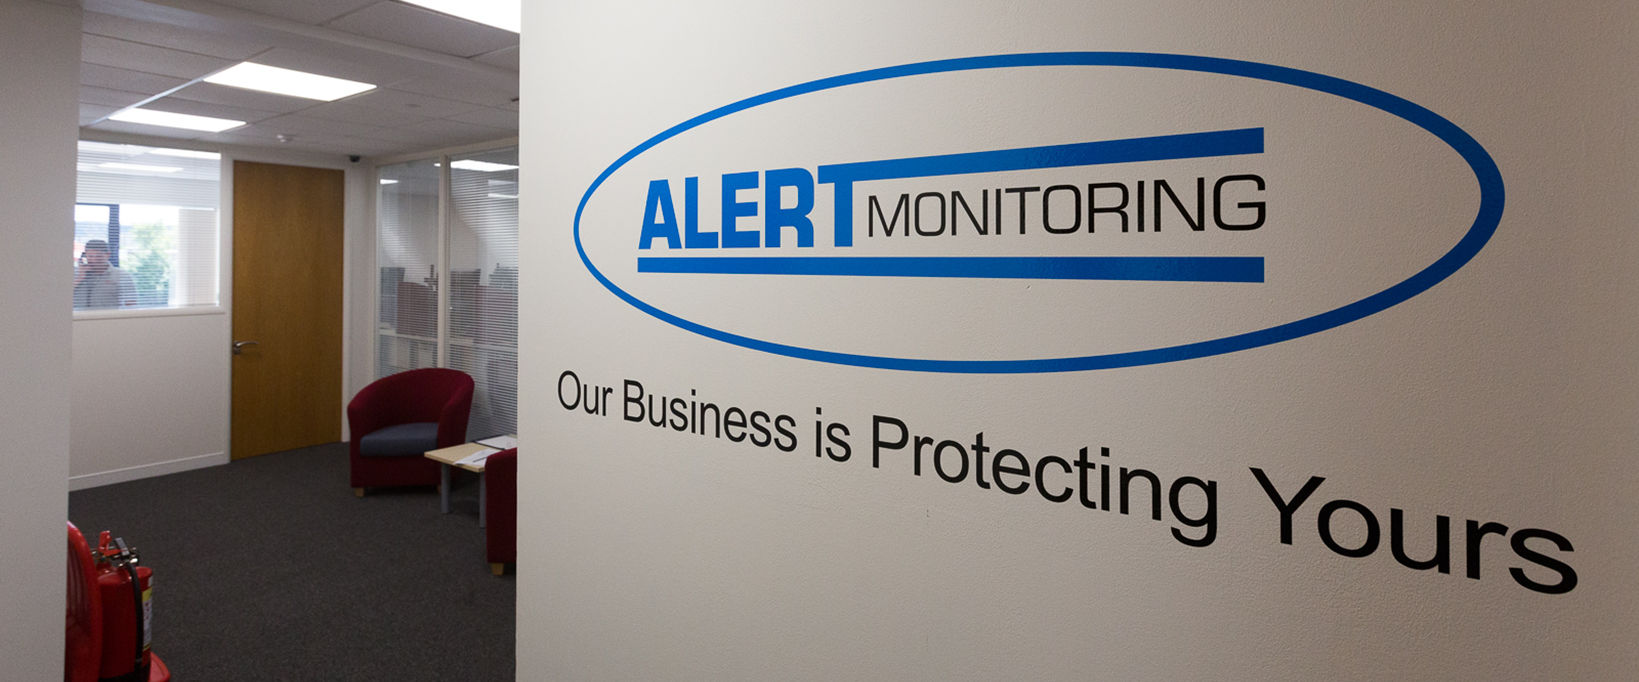 Alert Monitoring logo in office